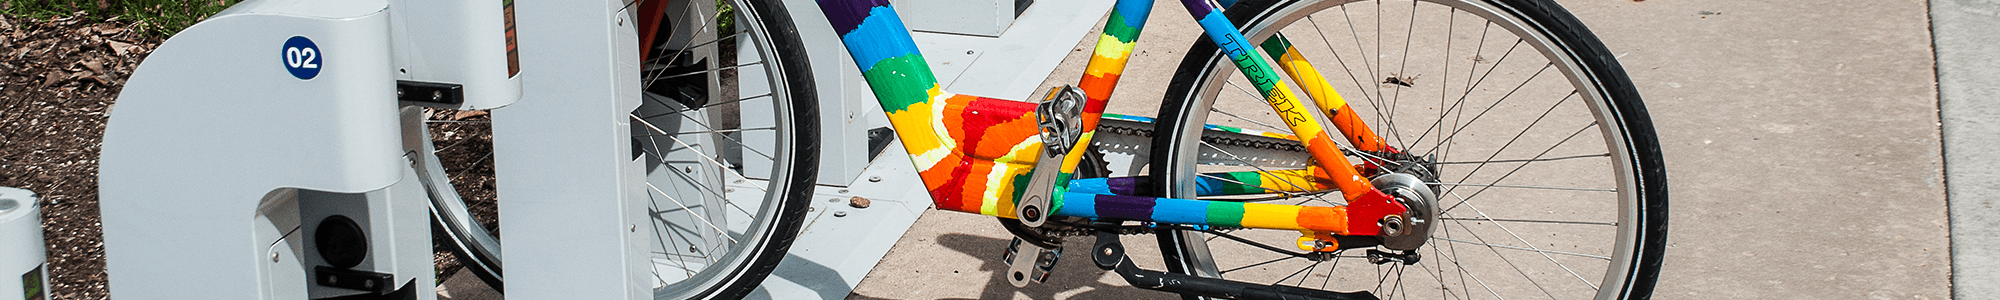 Rainbow bike © Tim Spijkerman